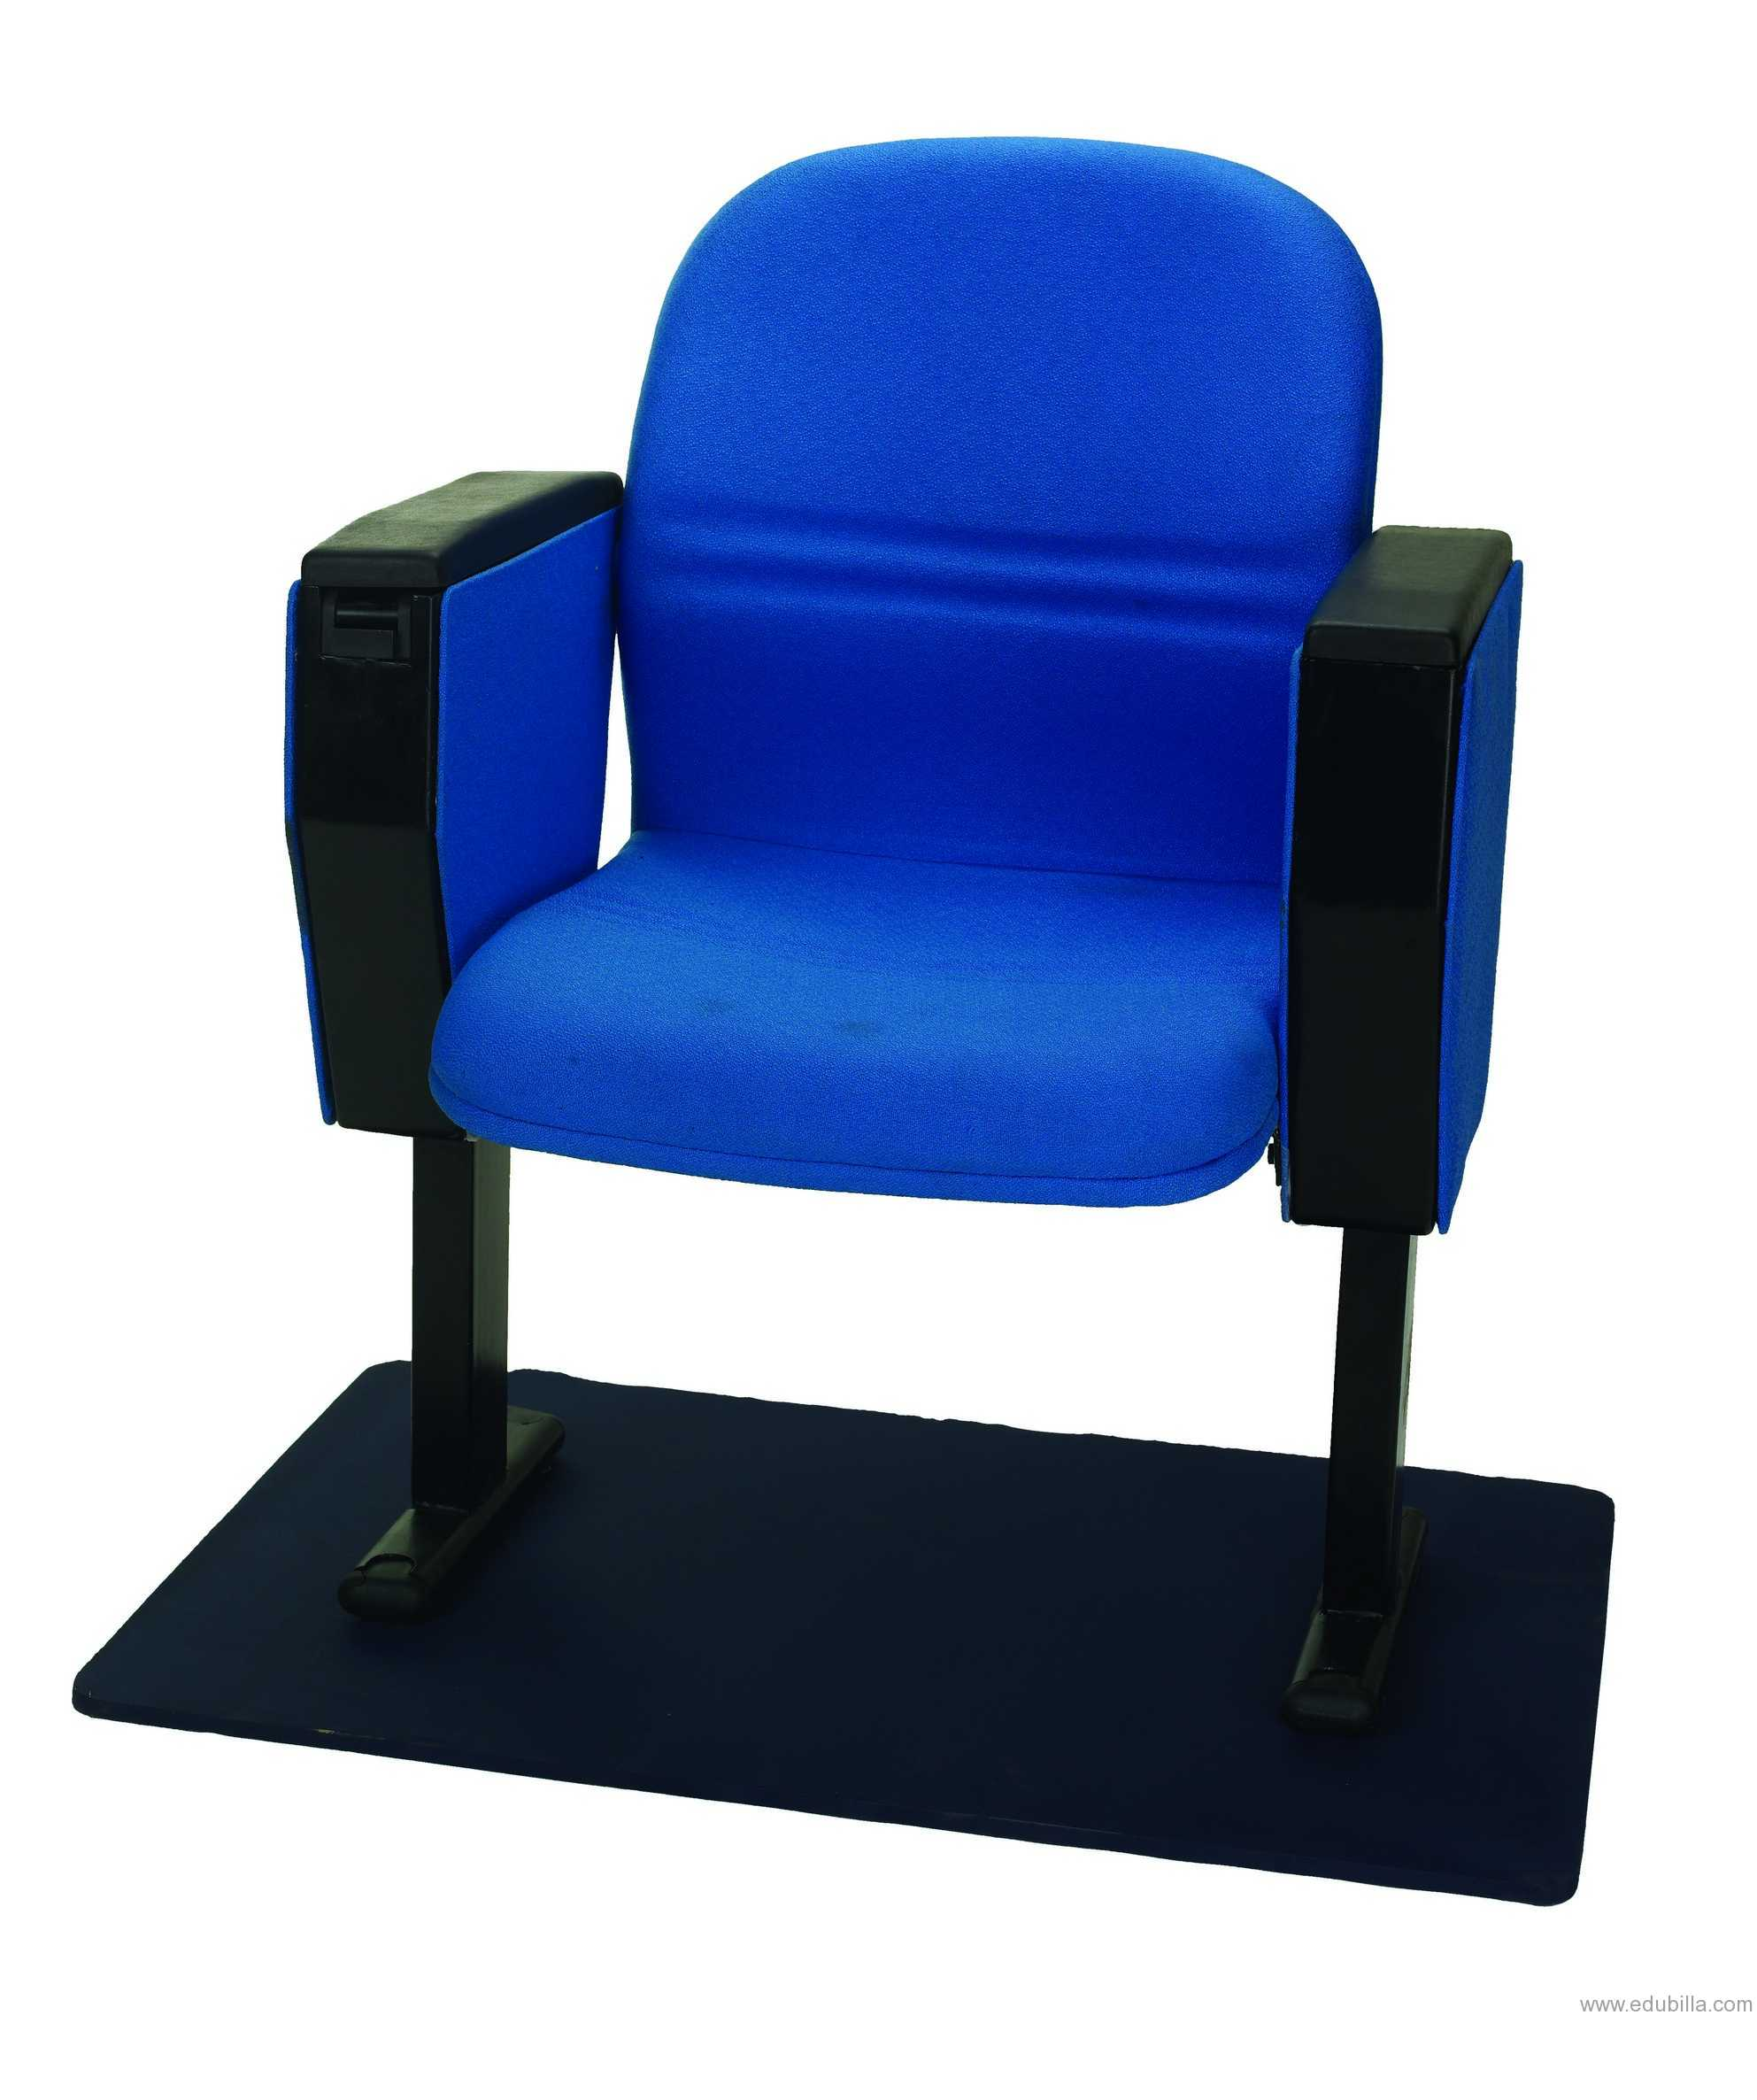 Ergomaxx - Auditorium Chairs